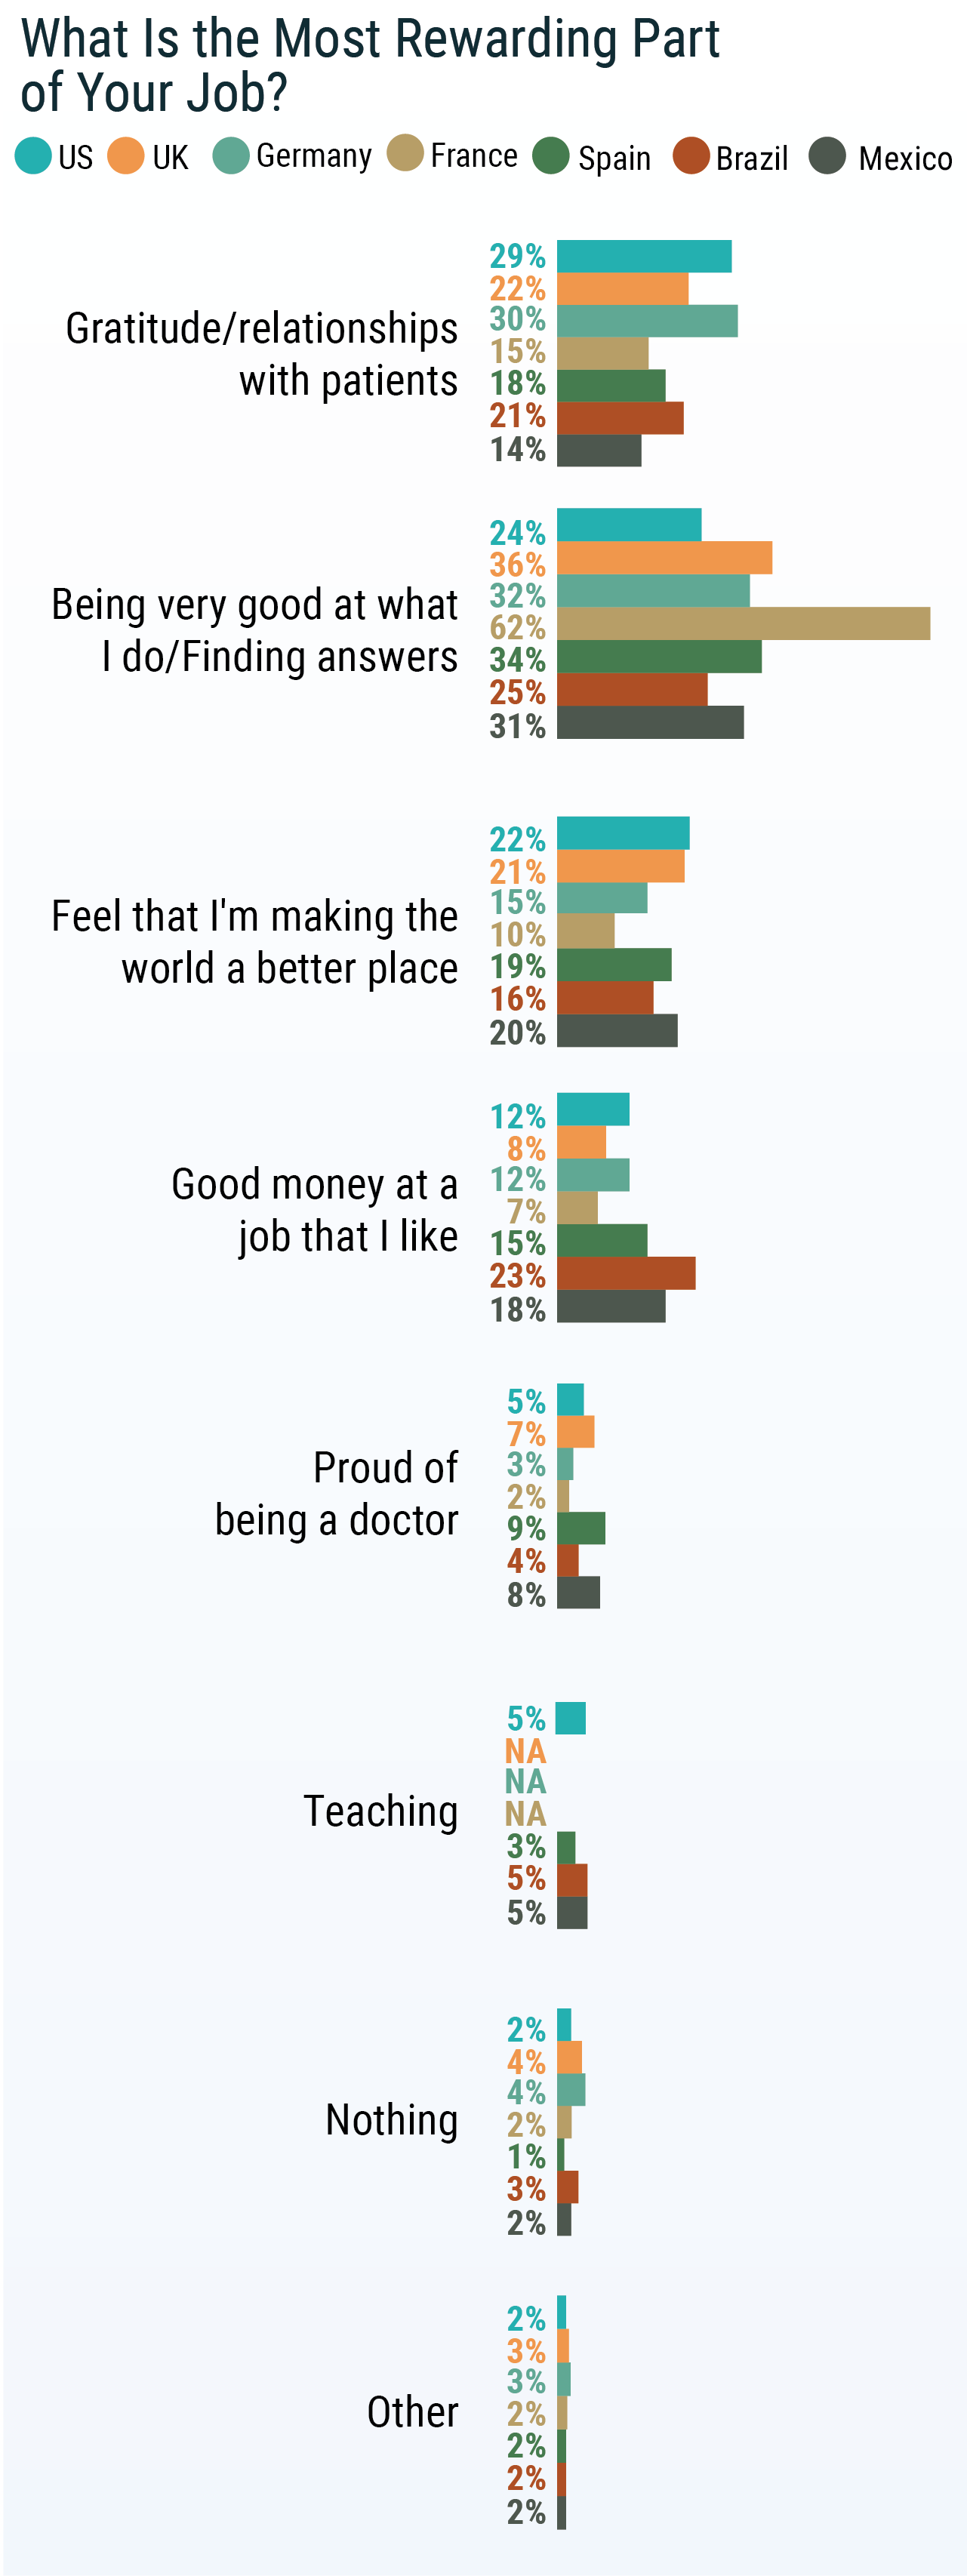 International Physician Compensation Report 2019 Do Us Physicians Have It Best